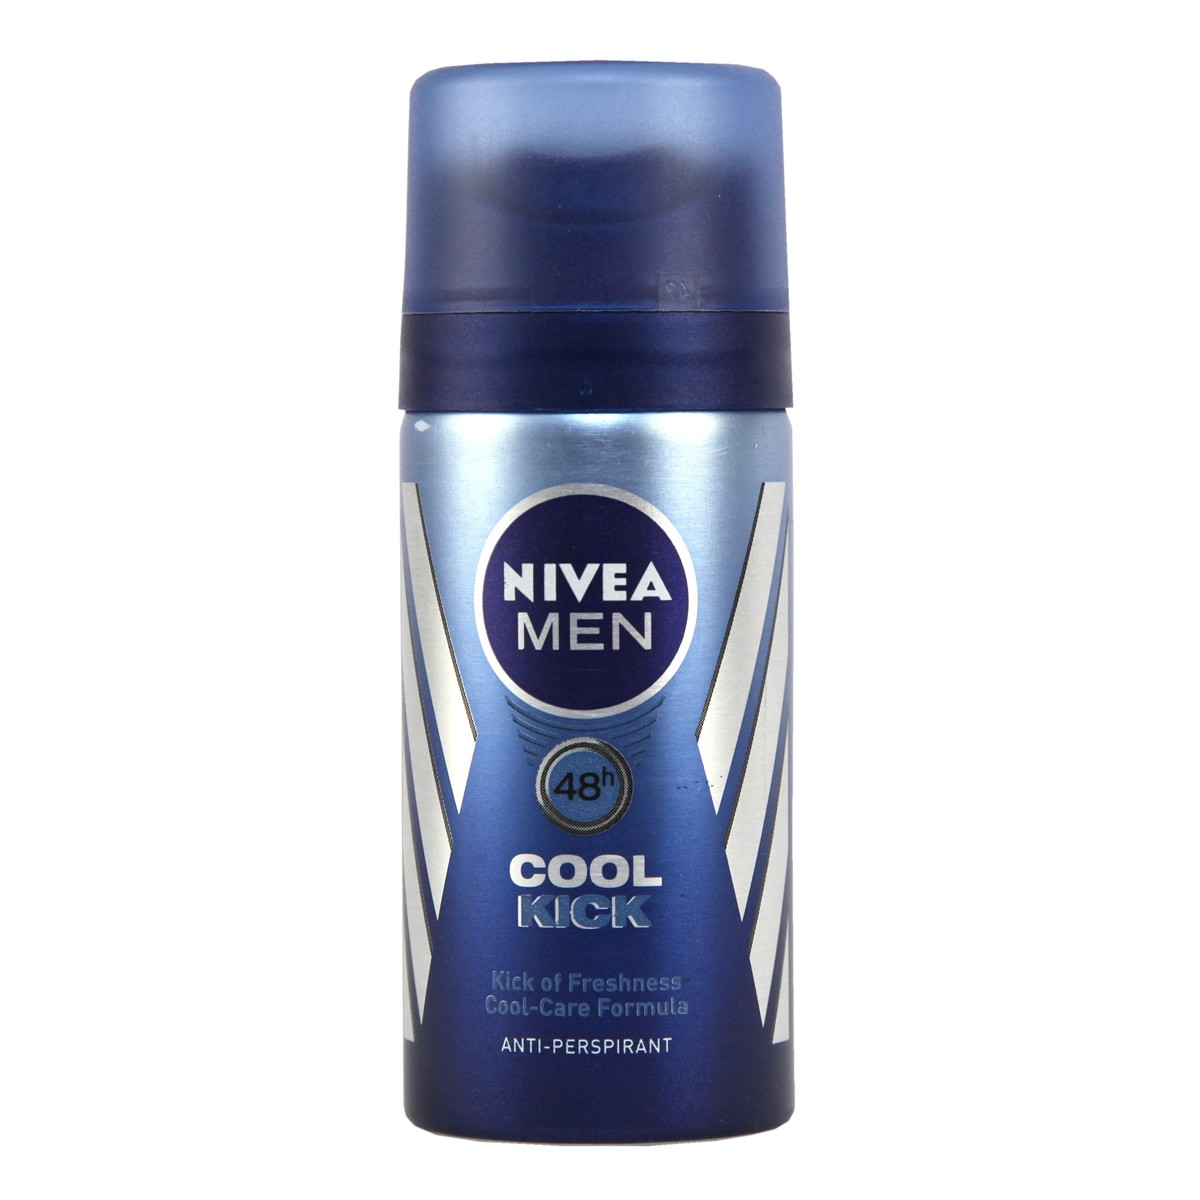 Nivea Men Cool Kick Anti-Perspirant - Travel Size